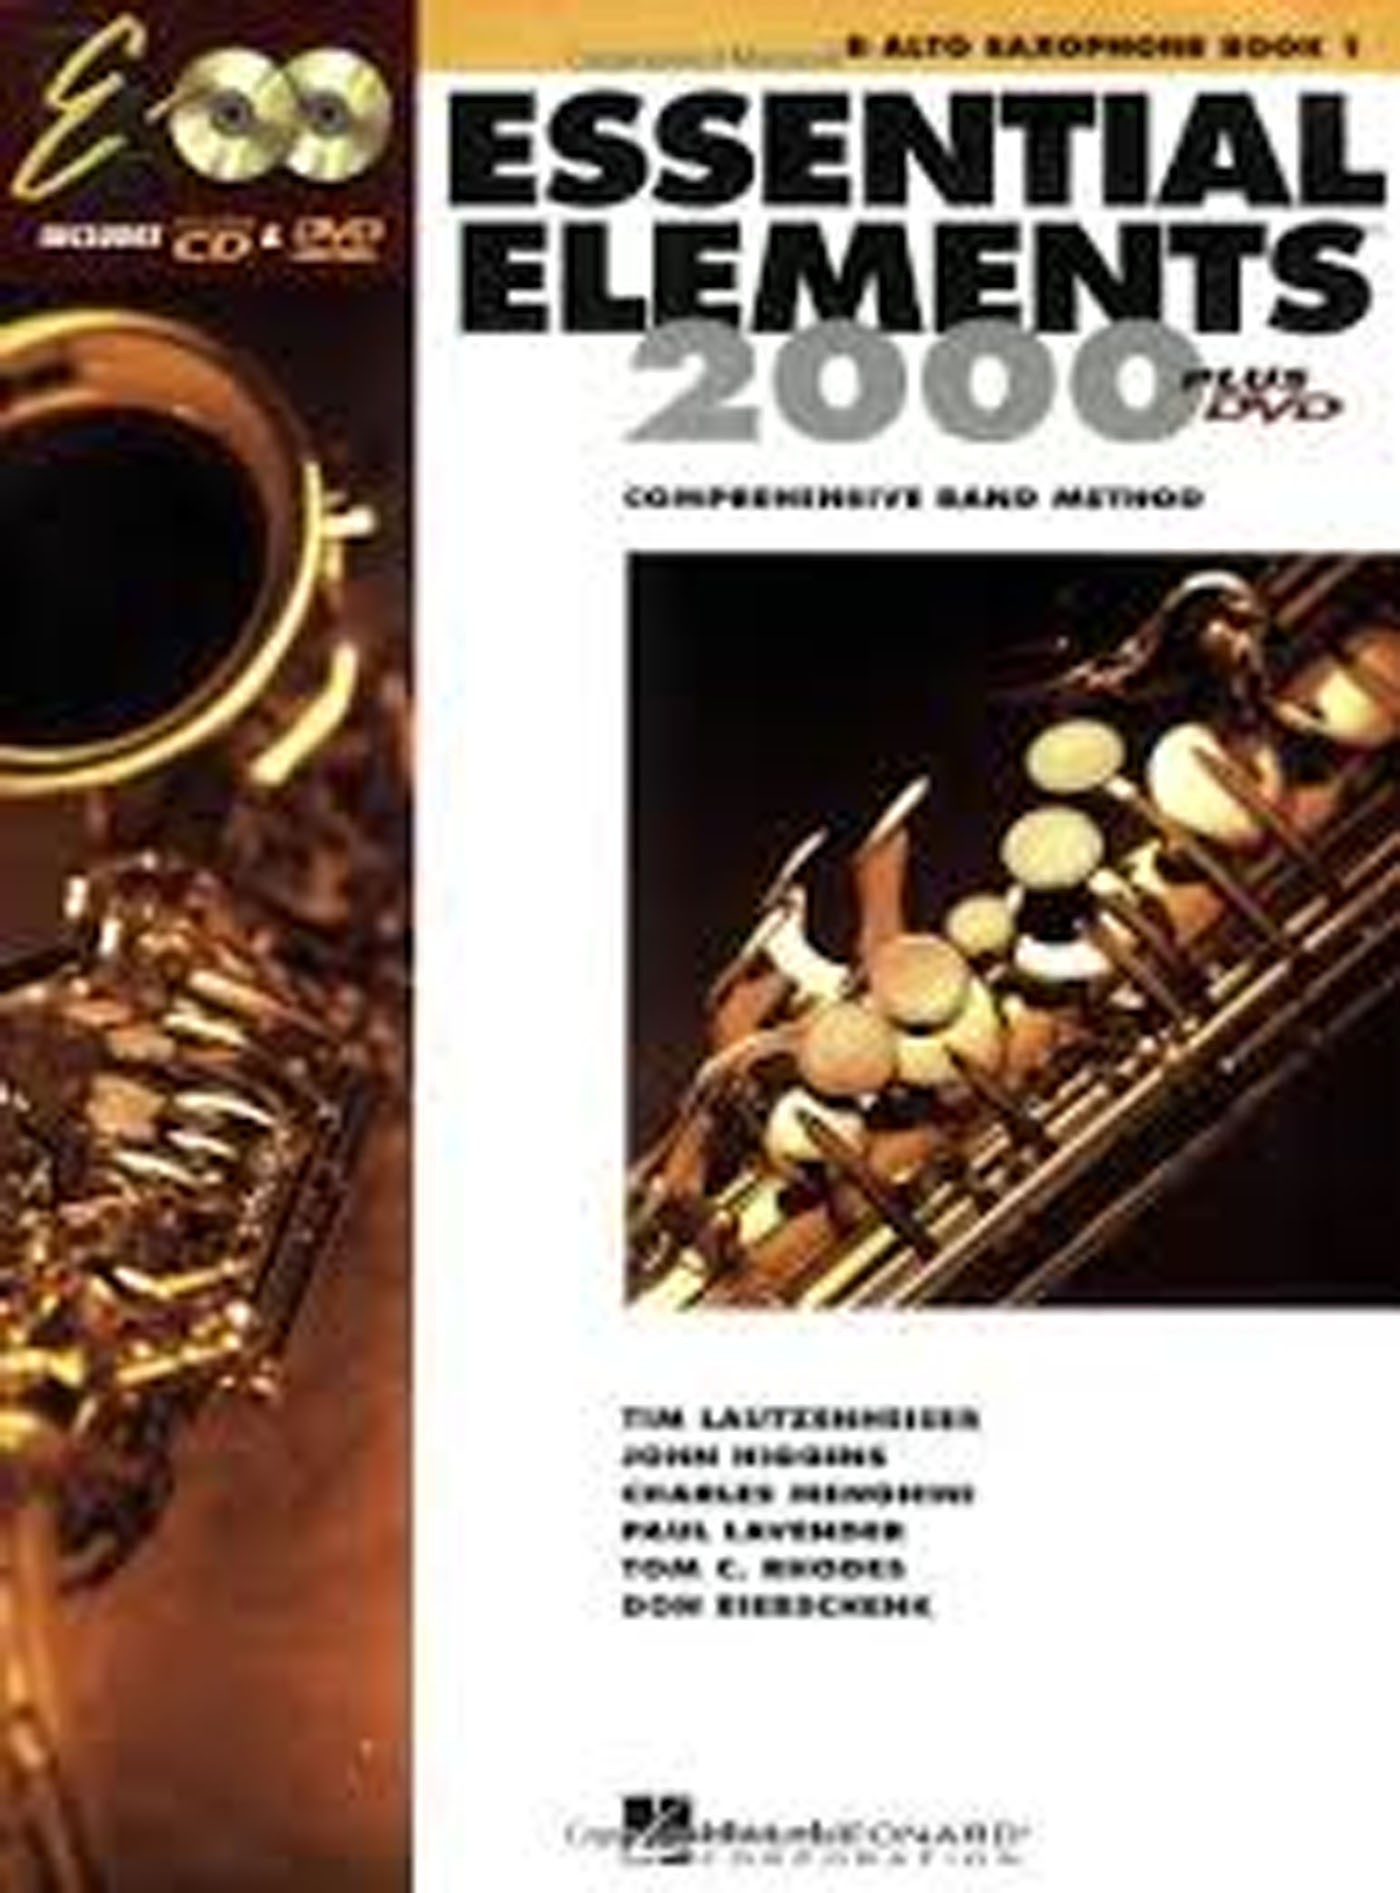 Essential Elements 2000 Book 1 & CD DVD Eb Alto Saxophone Comp Band Method S140